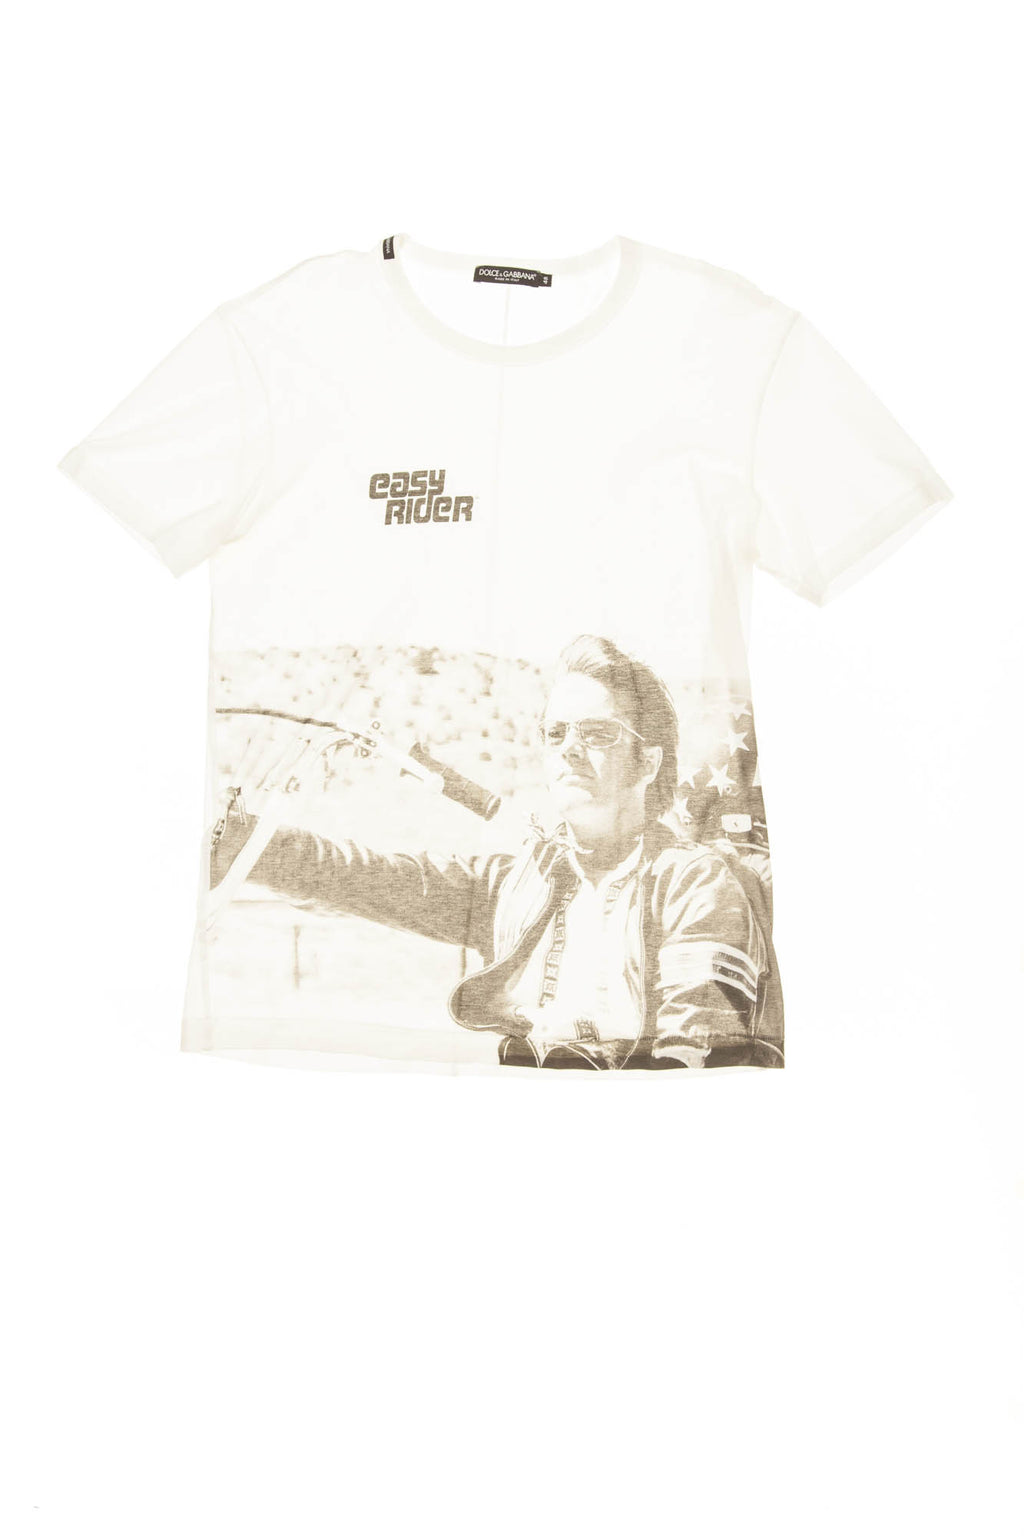 "Dolce & Gabbana - White and Black ""Easy Rider"" Graphic Tee -"